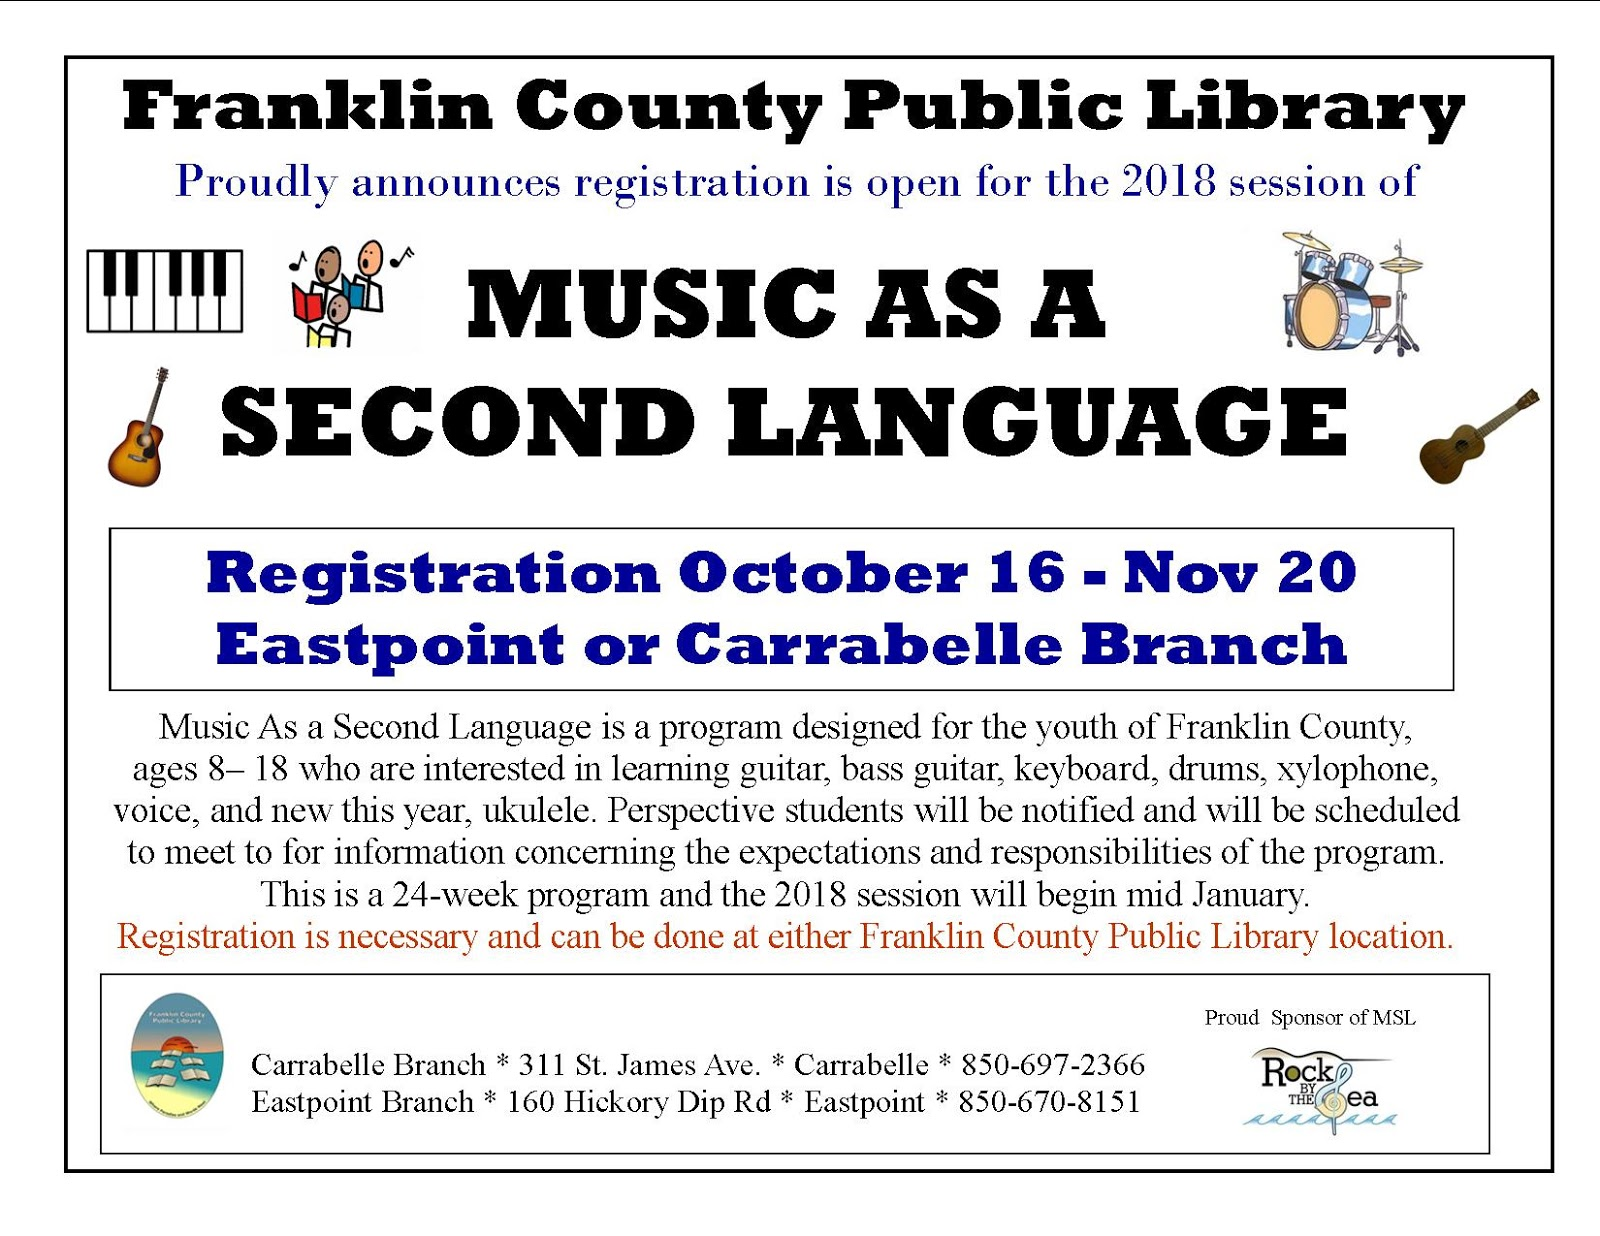 Franklin County Library Offers Music As A Second Language